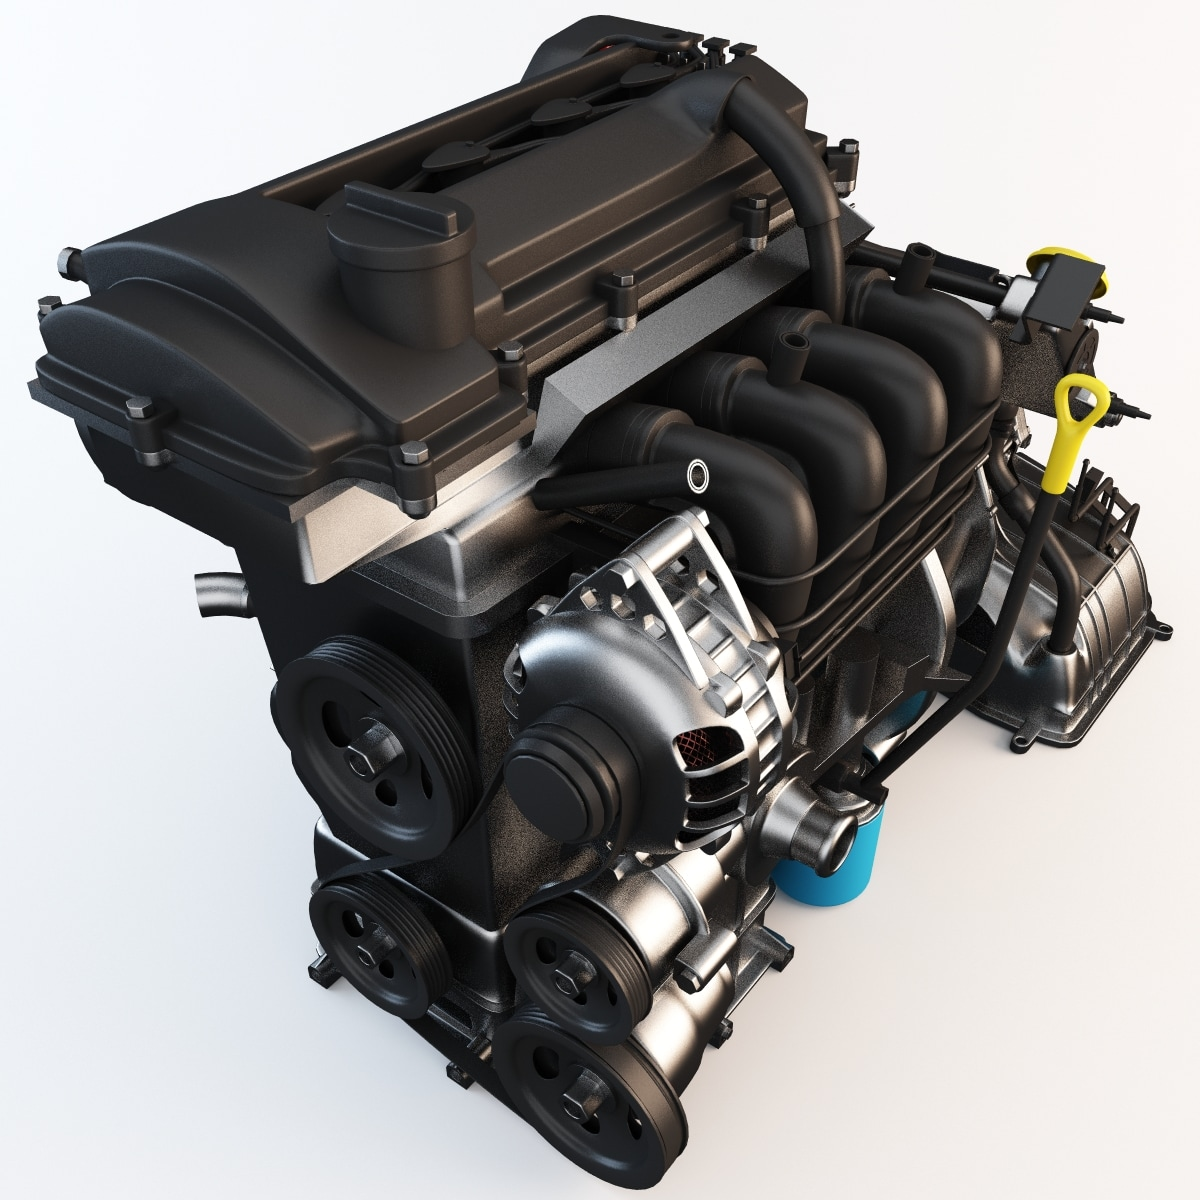 Car_Engine_v2_002.jpg